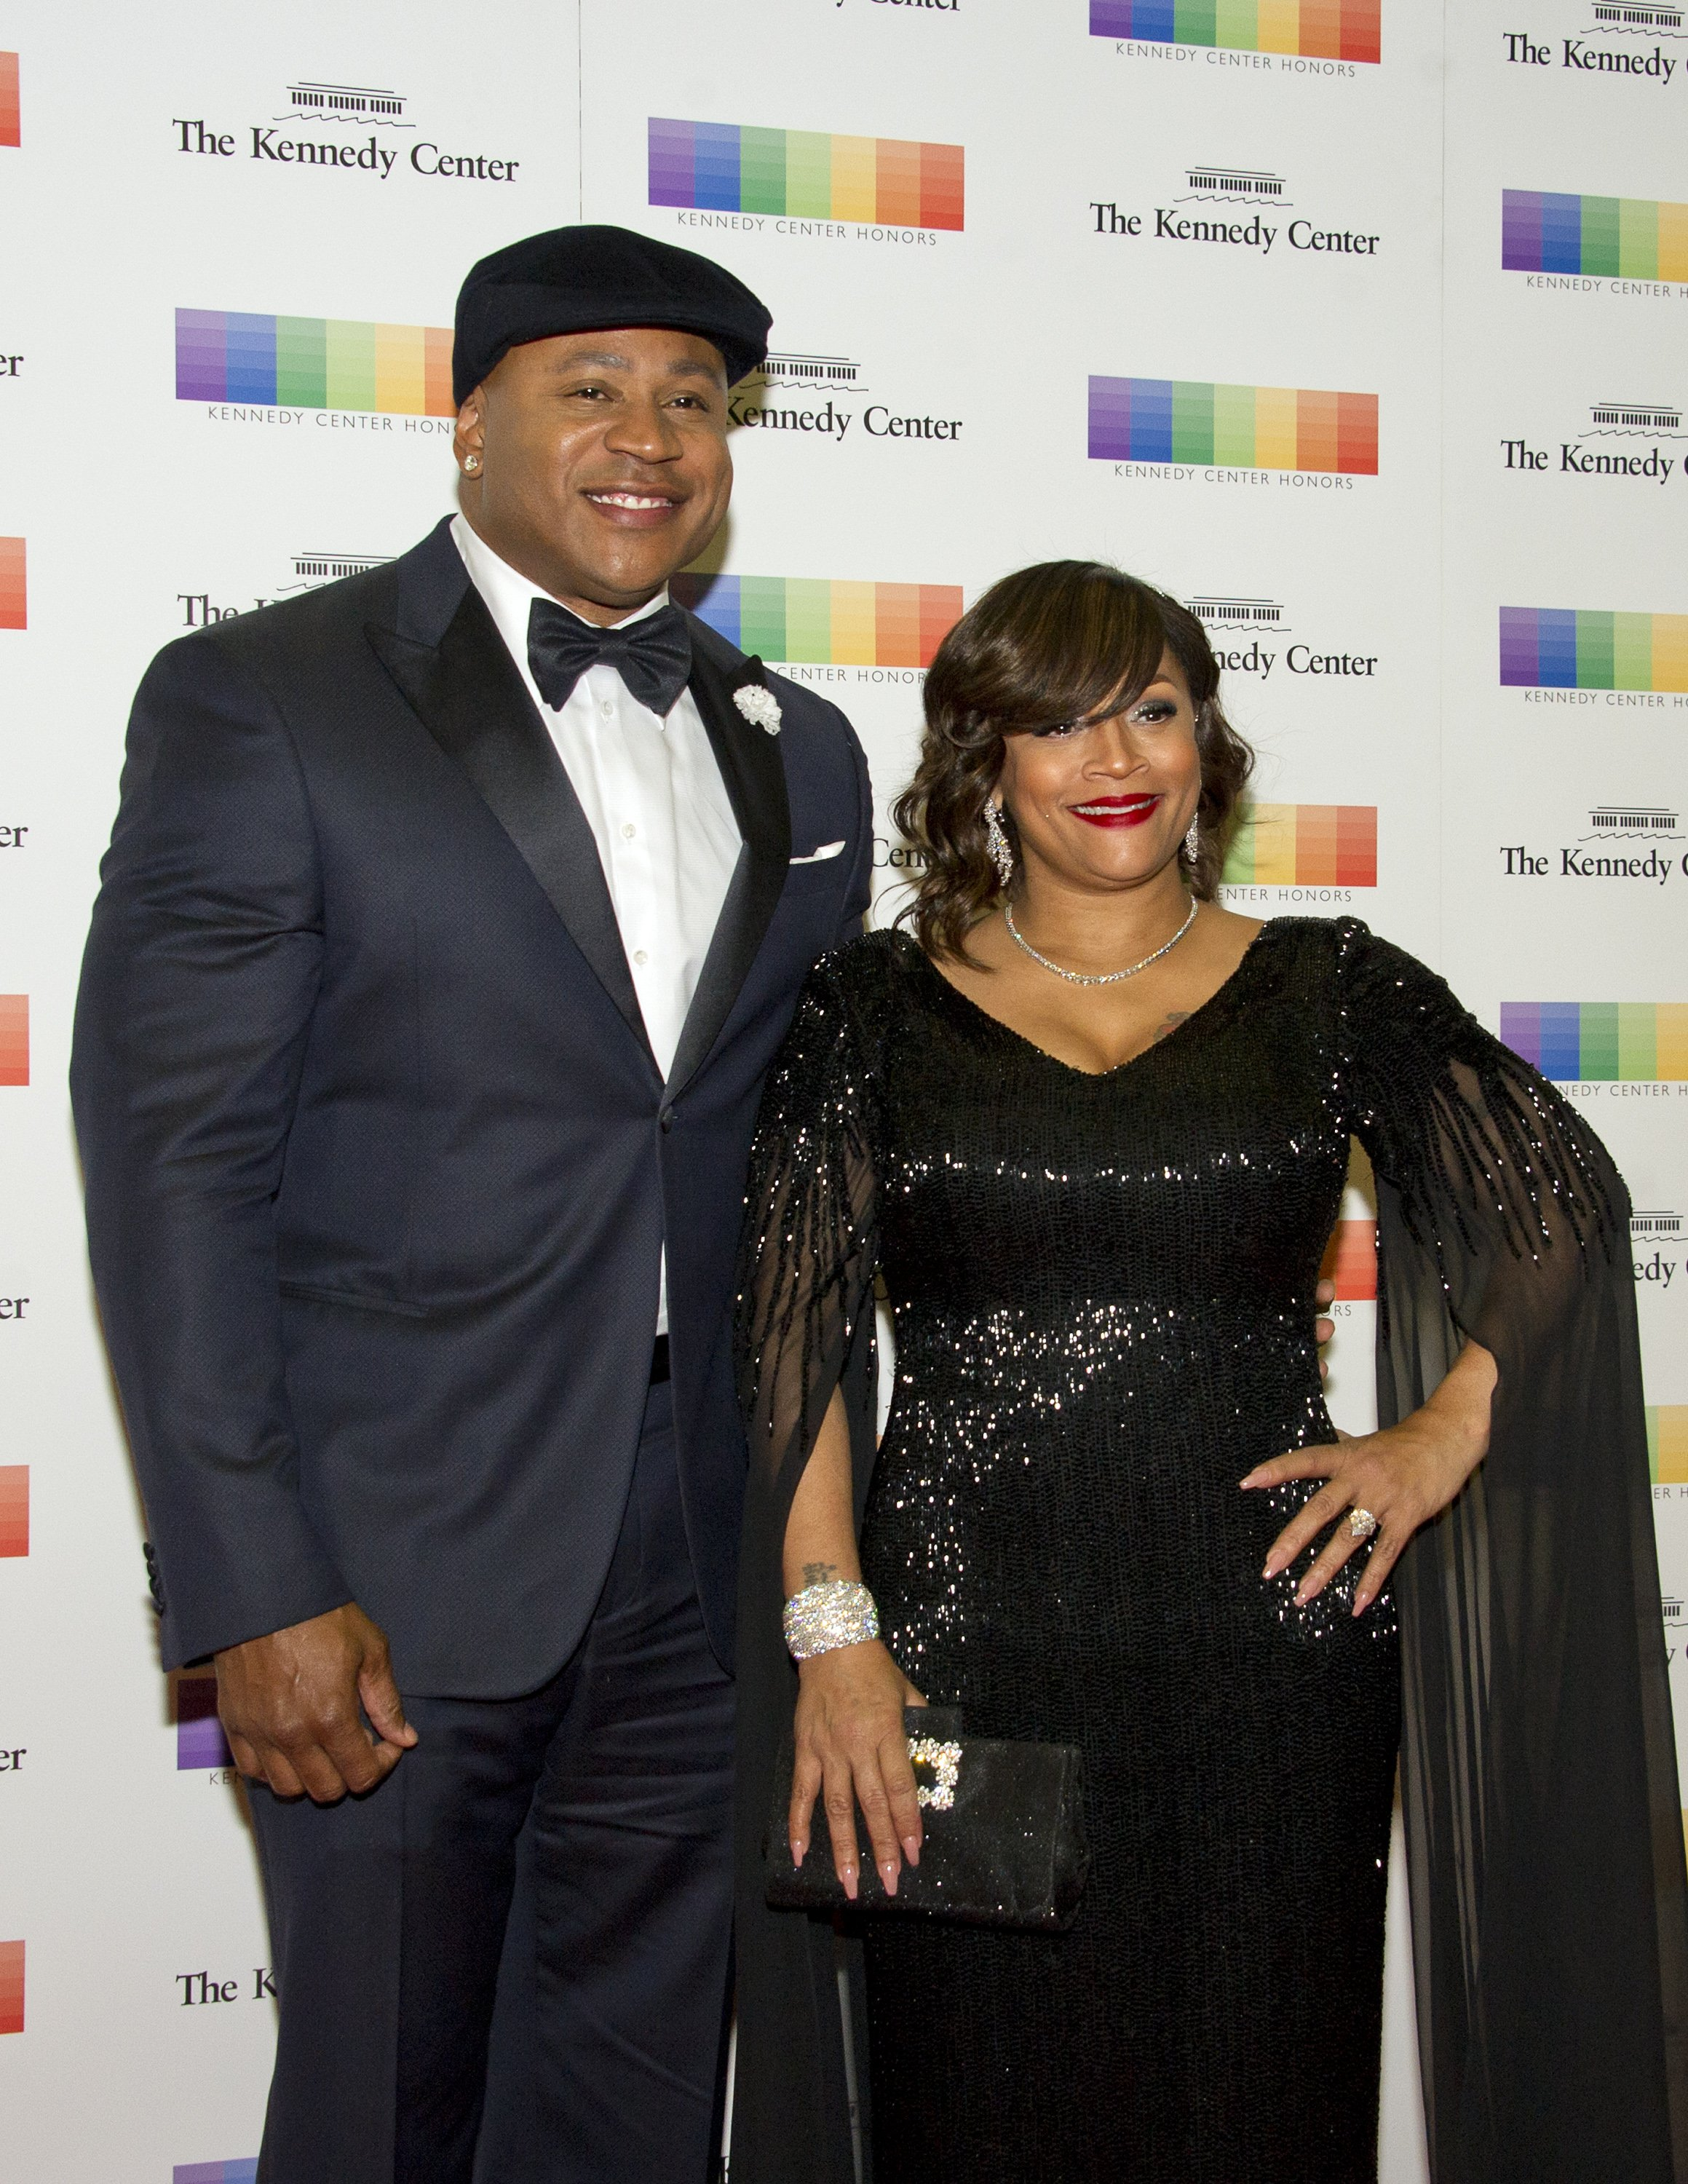 LL Cool J and Simone Smith pictured at the formal Artist's Dinner honoring the recipients of the 40th Annual Kennedy Center Honors at the US Department of State on December 2, 2017 | Photo: Getty Images